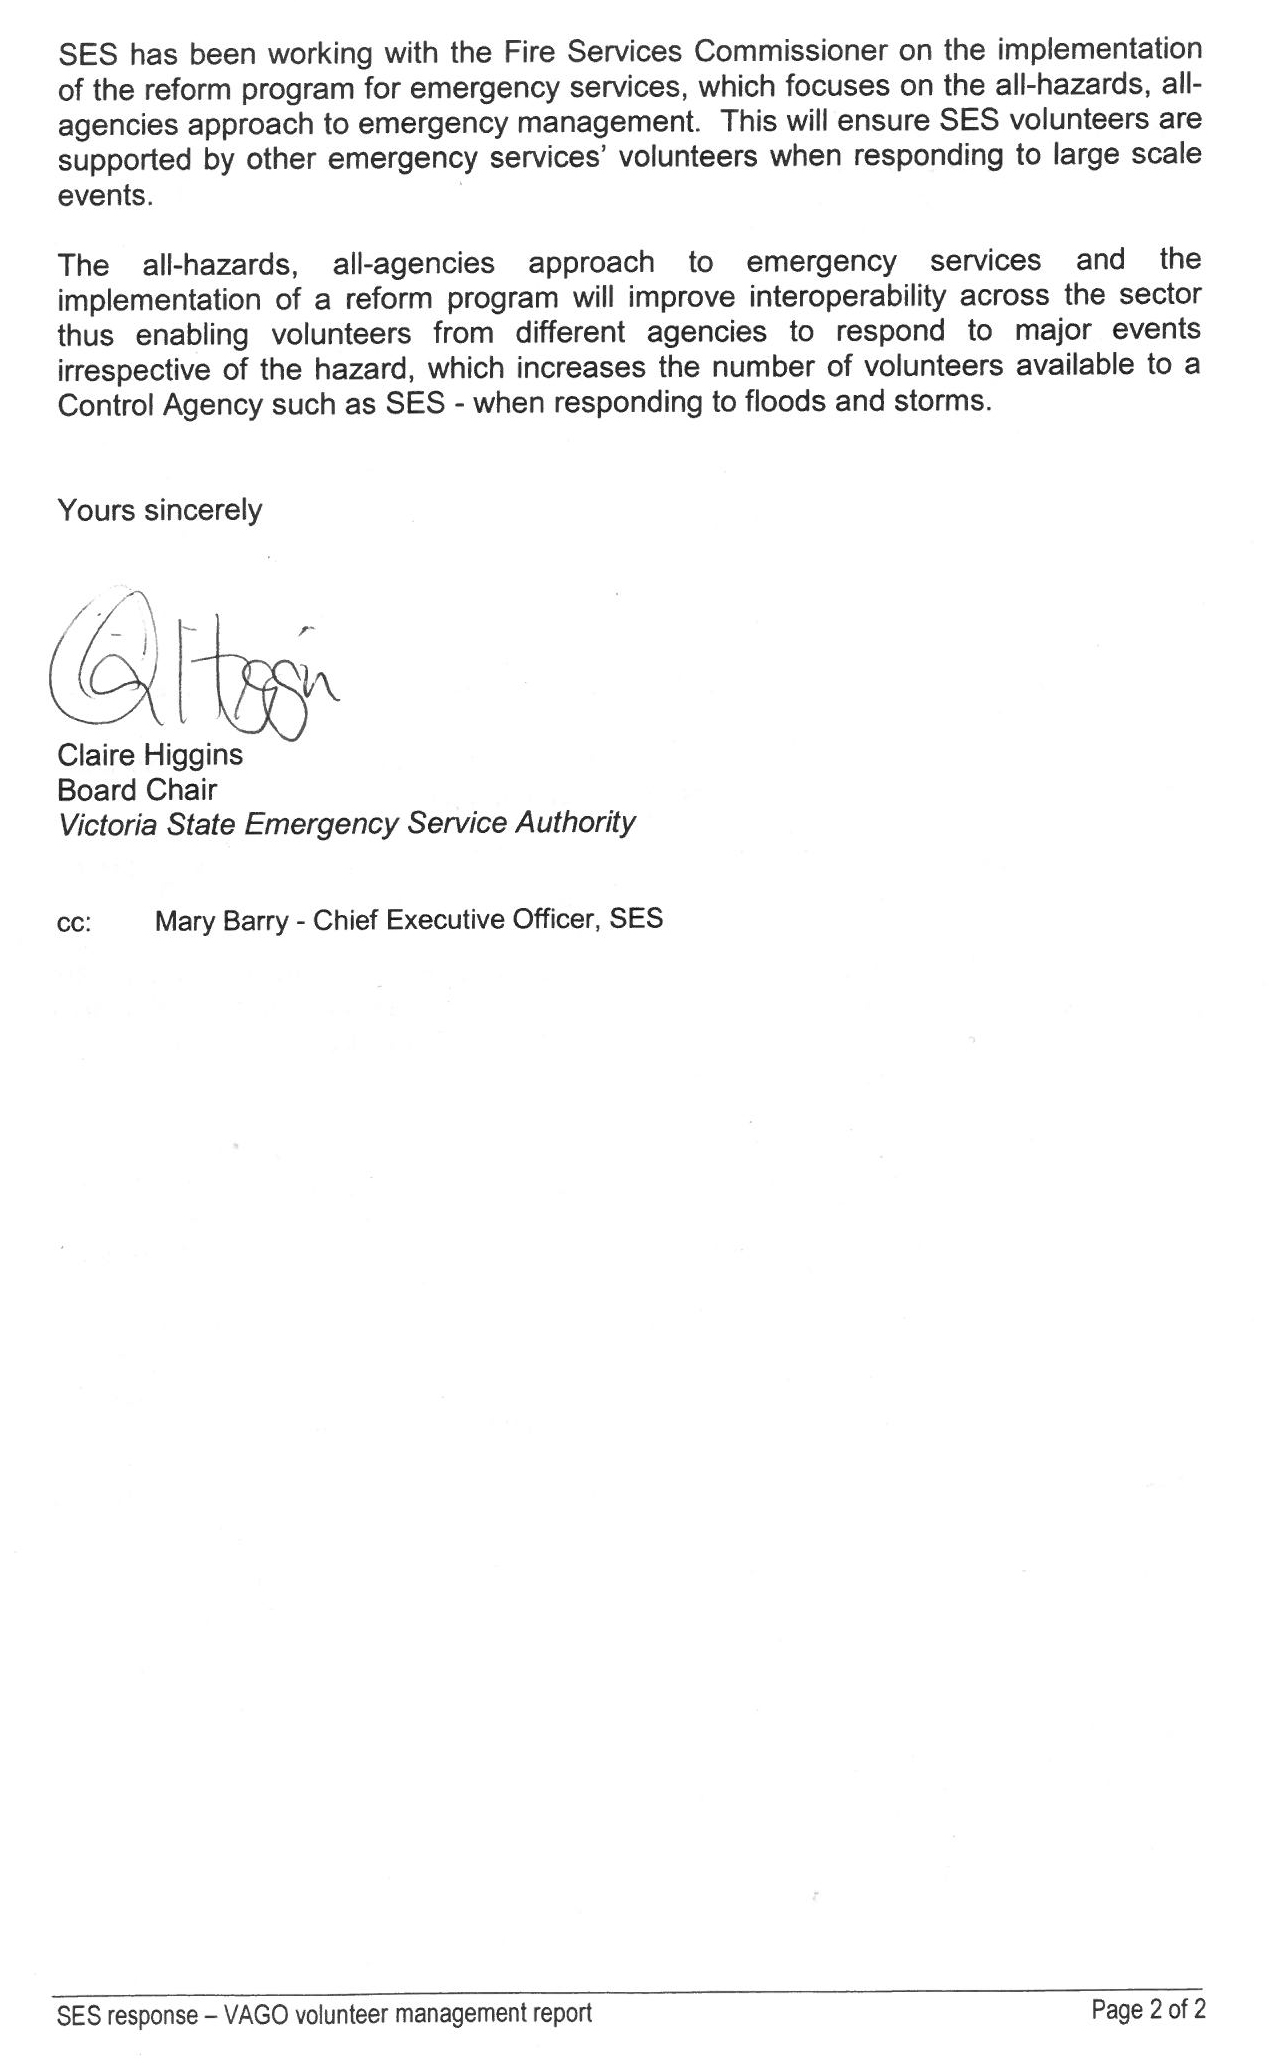 Second page of response provided by the Board Chair, Victoria State Emergency Service Authority